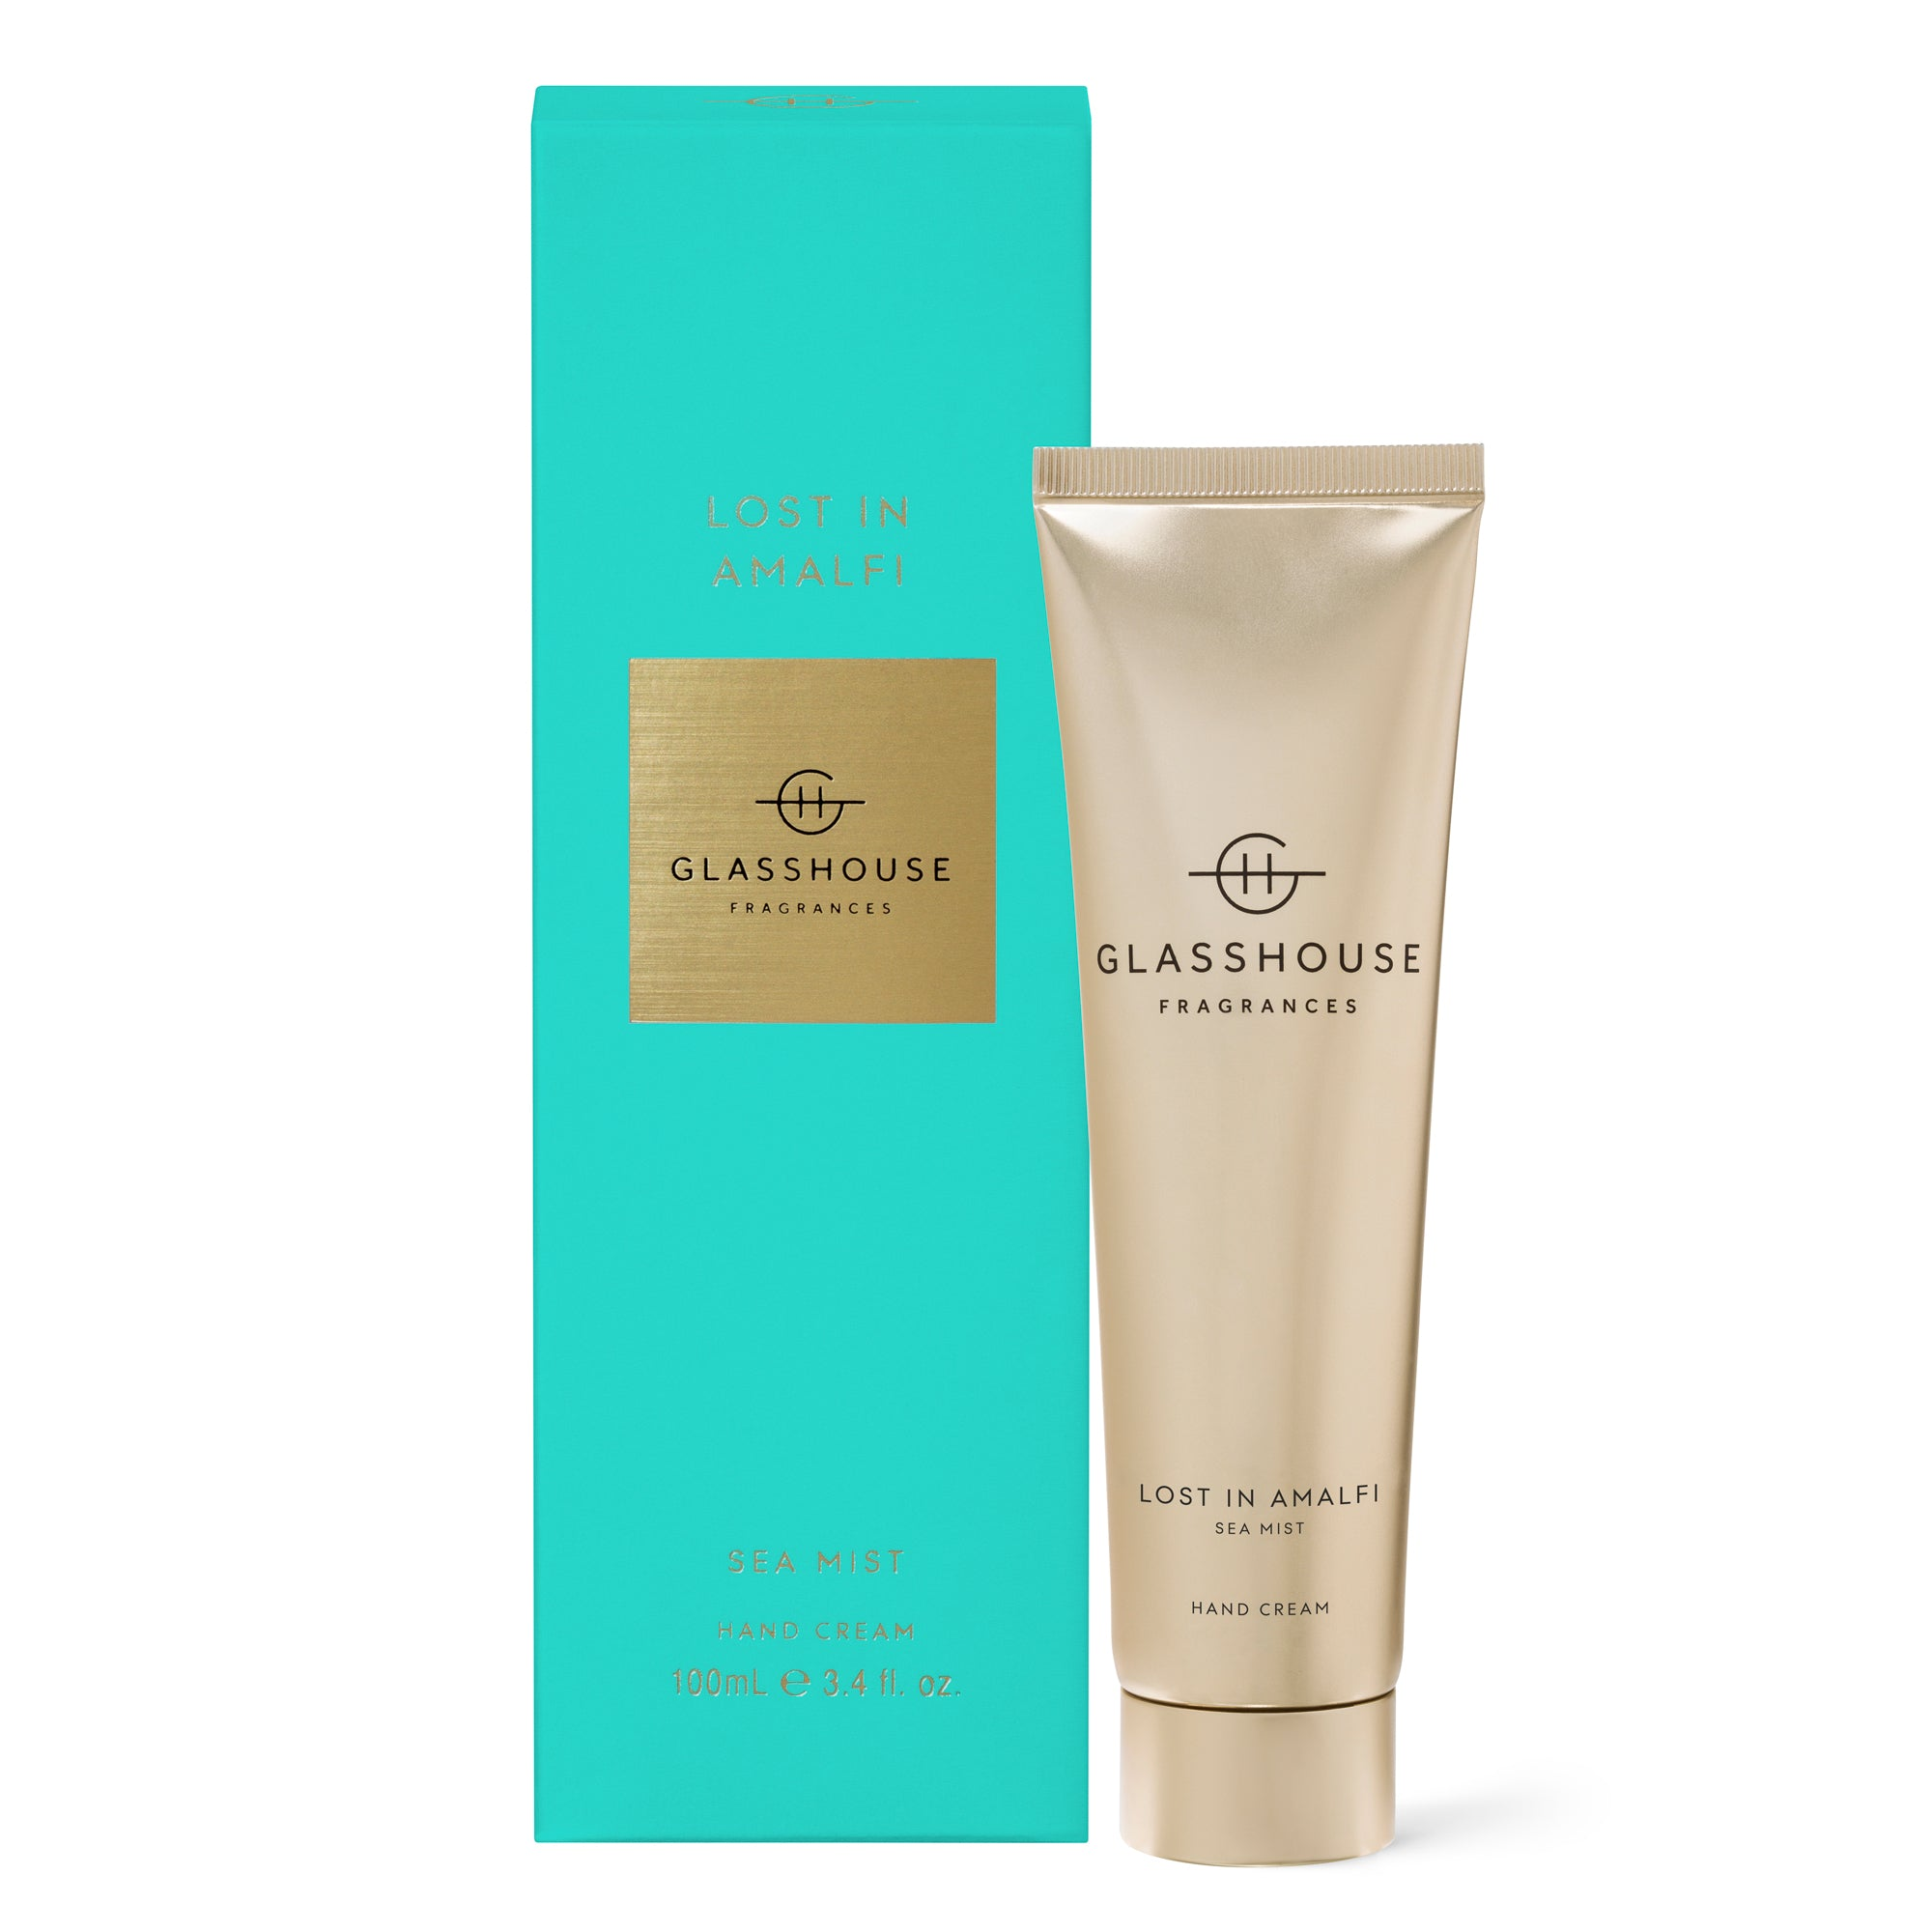 GLASSHOUSE - LOST IN AMALFI Hand Cream